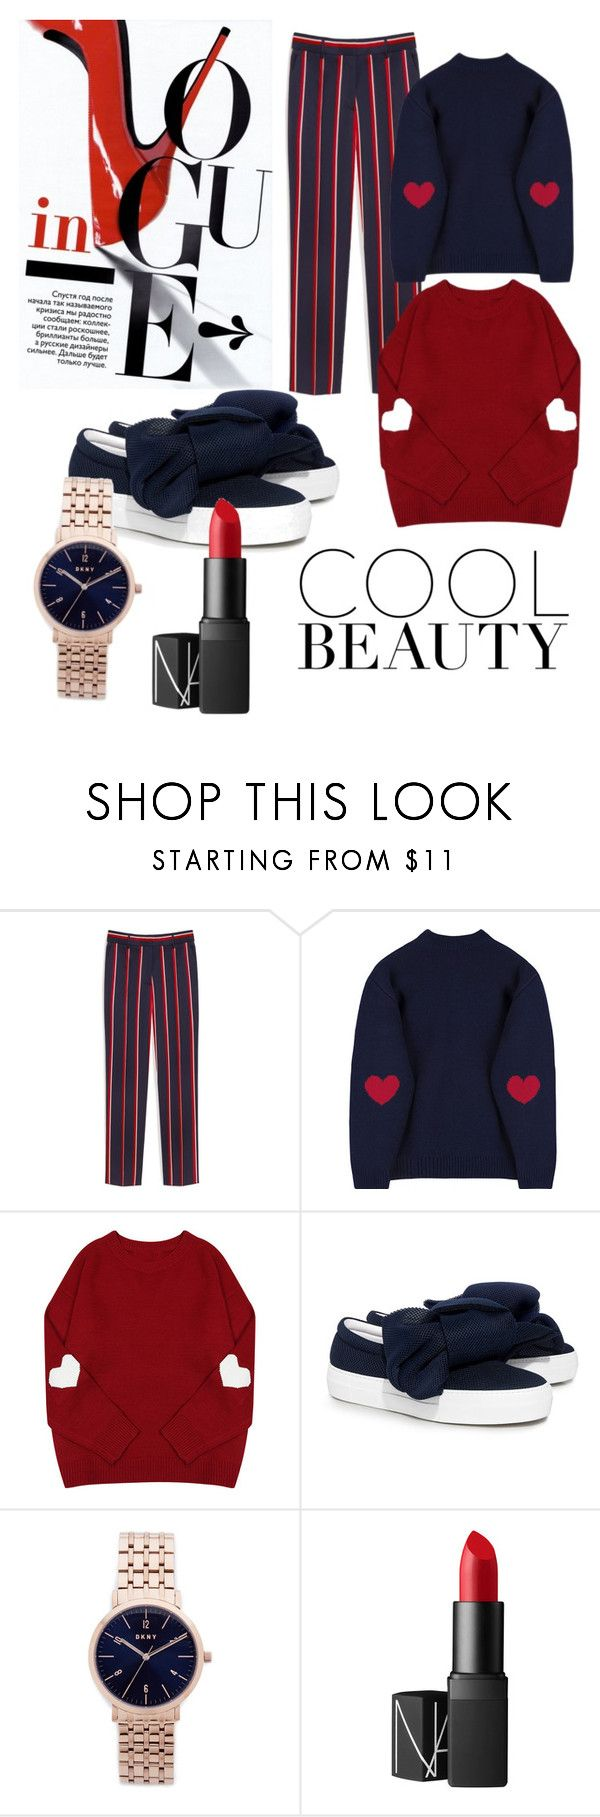 """""""Keep it cool"""" by warwickbrowng ❤ liked on Polyvore featuring Mulberry, Joshua's, DKNY and NARS Cosmetics"""